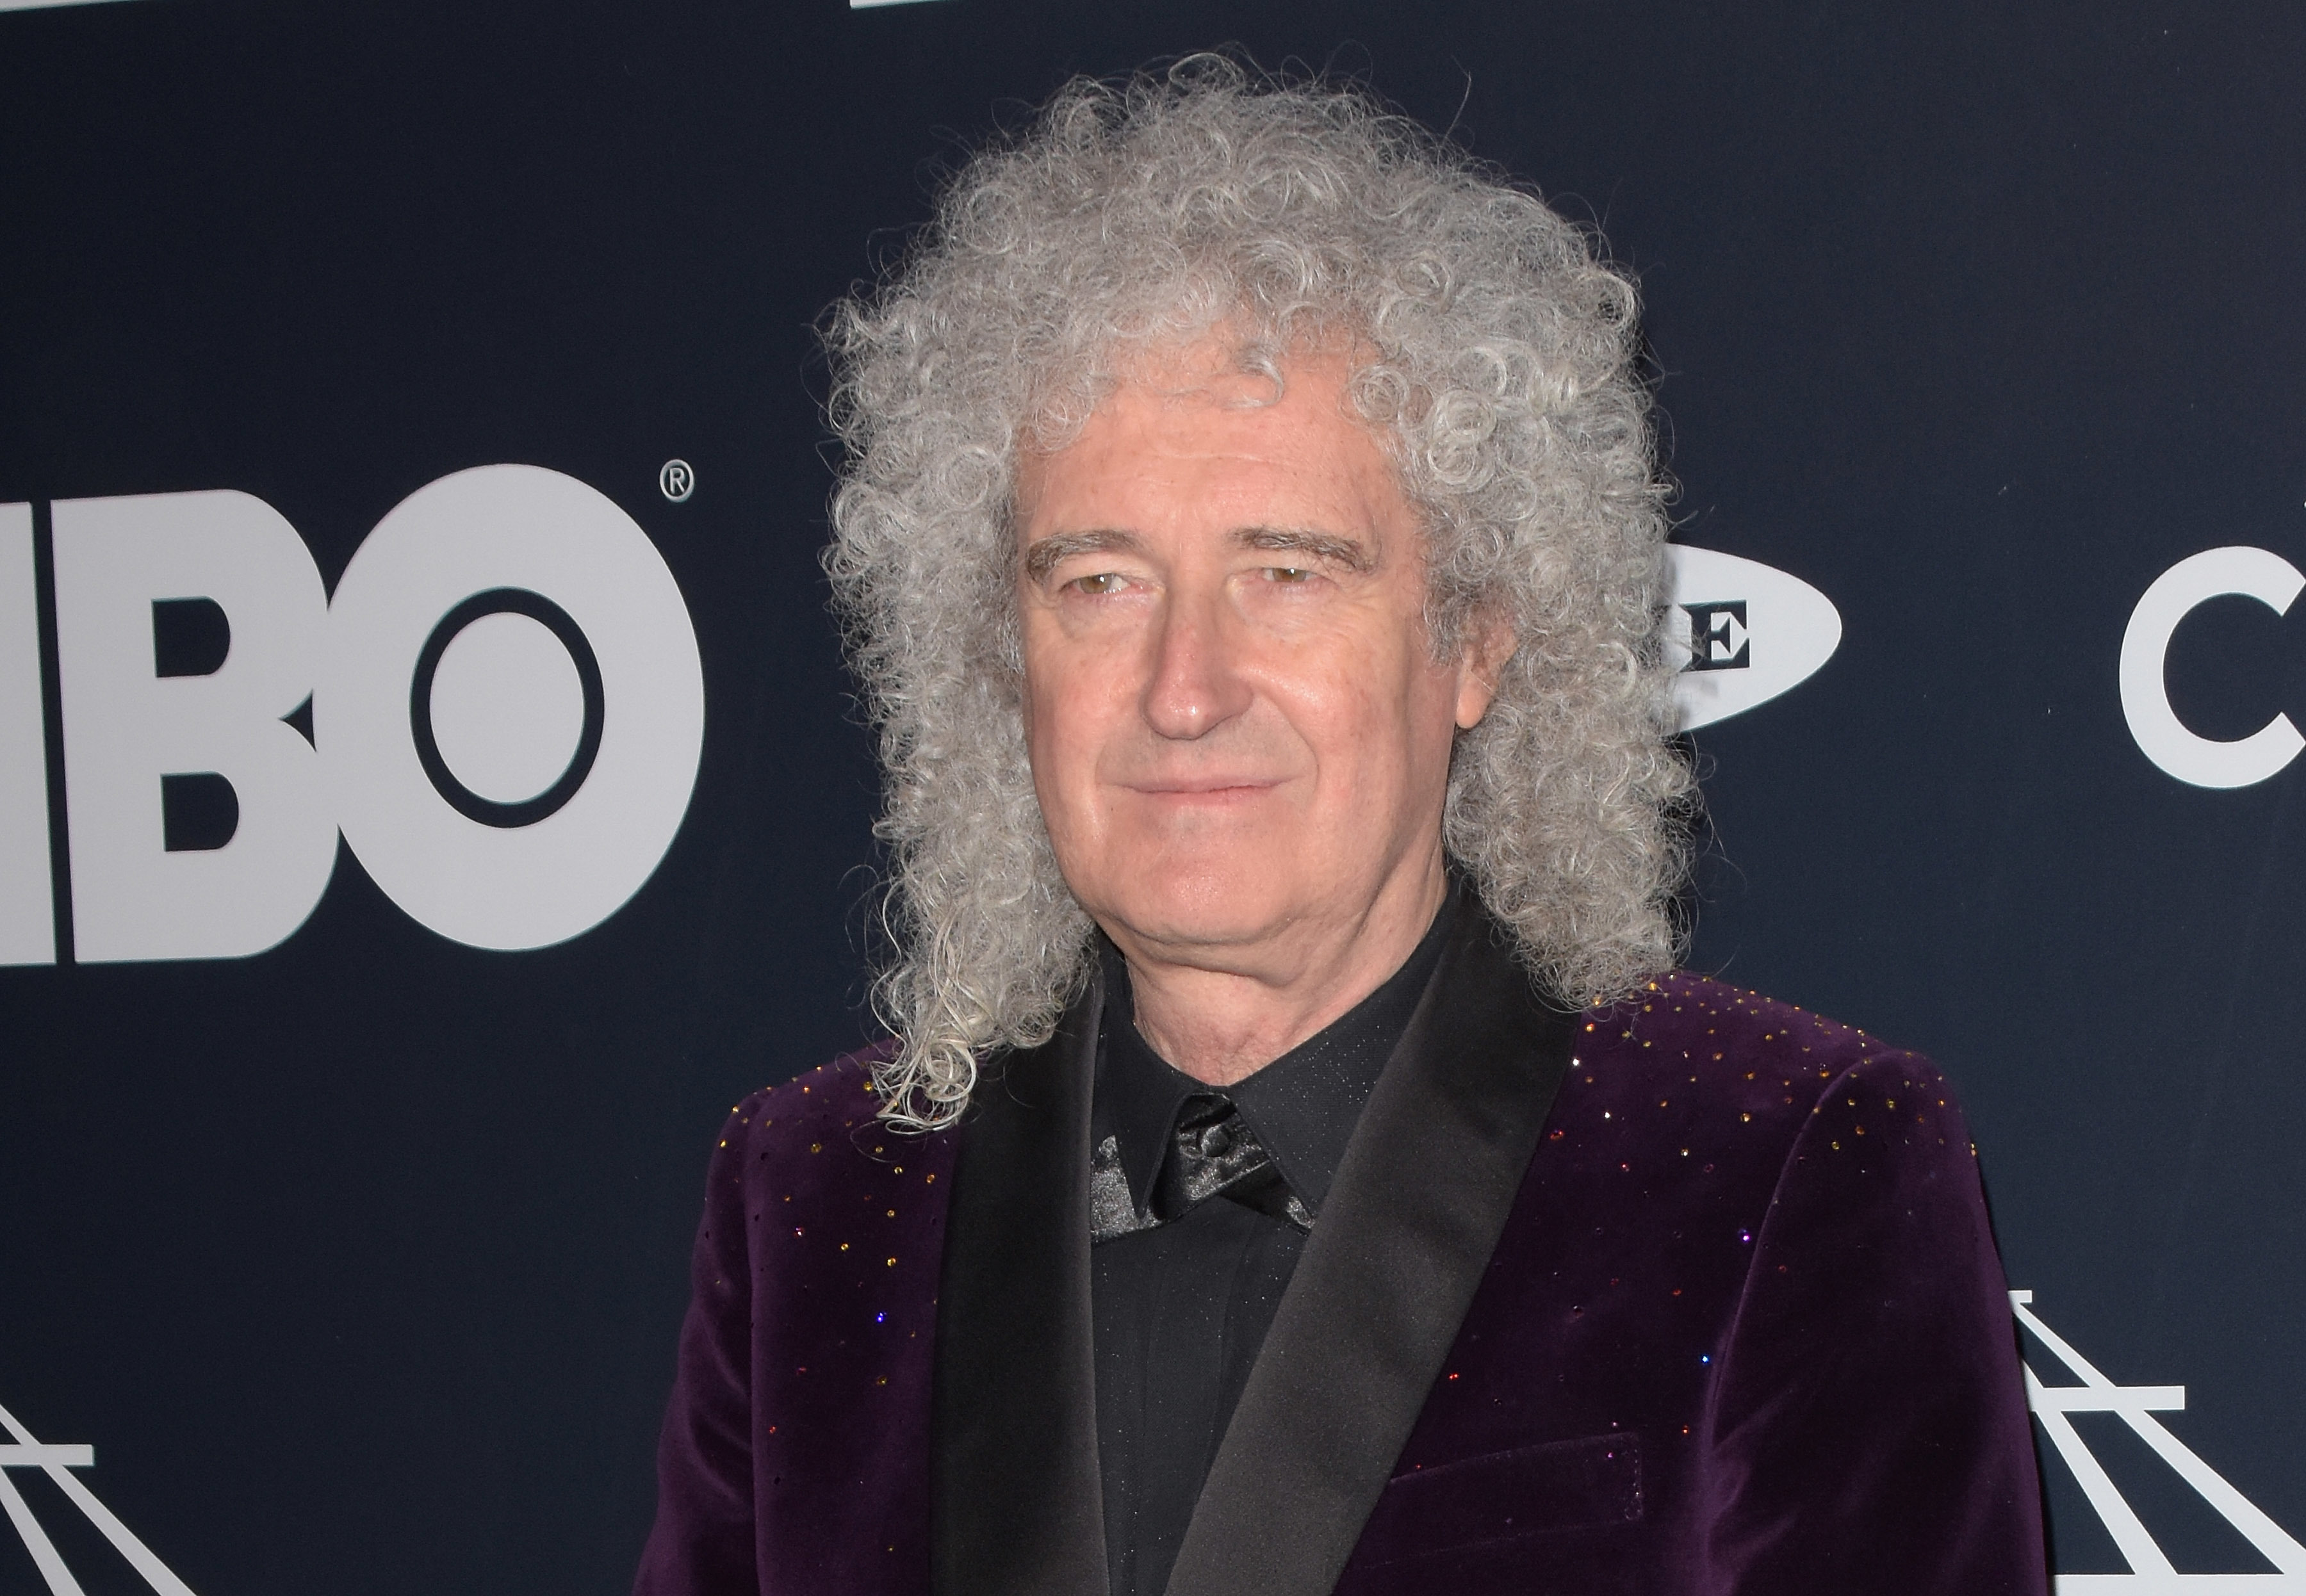 Brian May attends the 2019 Rock & Roll Hall Of Fame Induction Ceremony at Barclays Center on March 29, 2019 in Brooklyn, New York. (Photo by imageSPACE/Sipa USA)